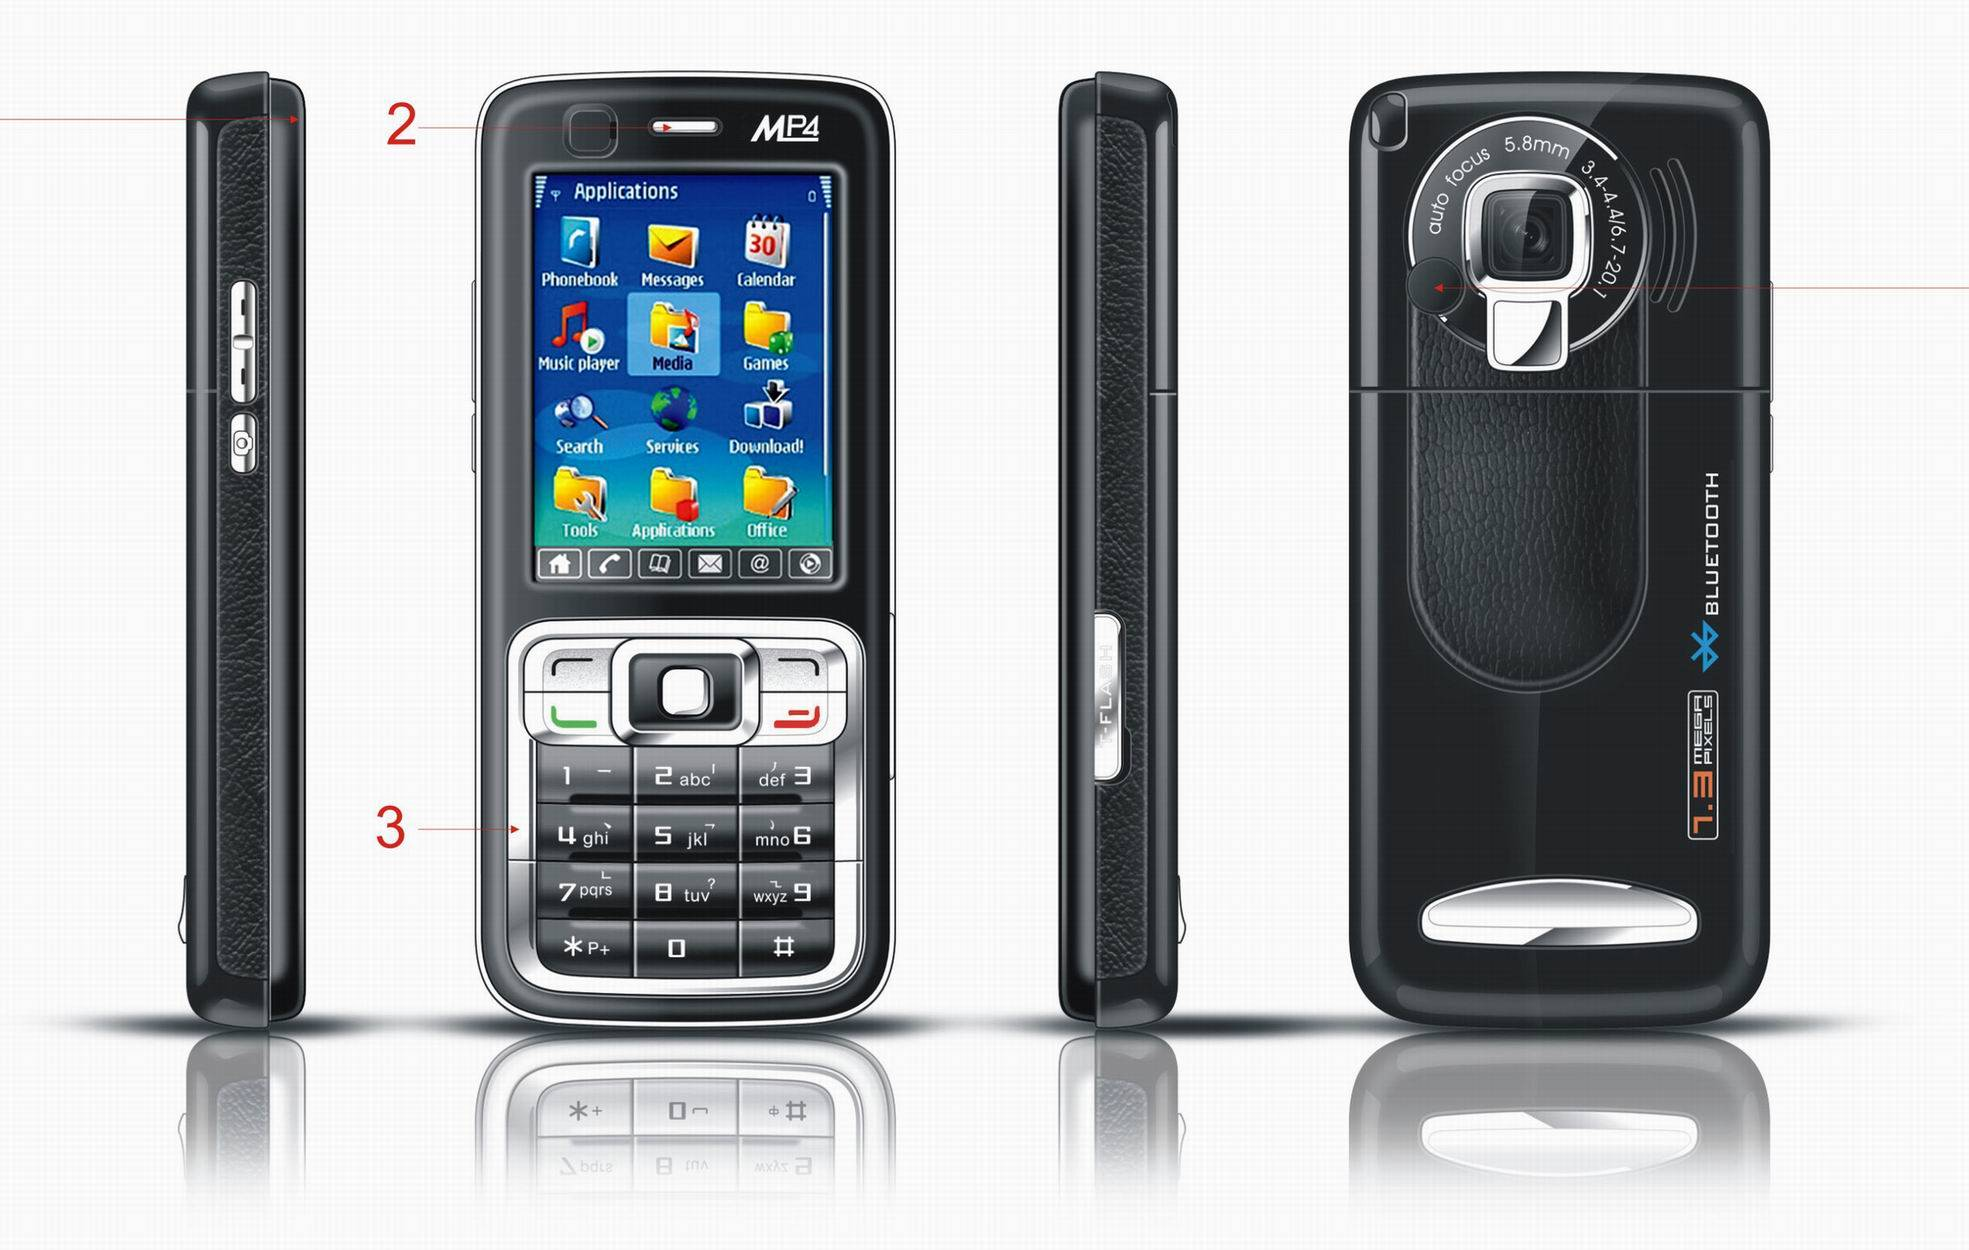 Mobile Phone, Cell Phone W/ mp3, mp4, camera and build in 128M FLASH MEMORY